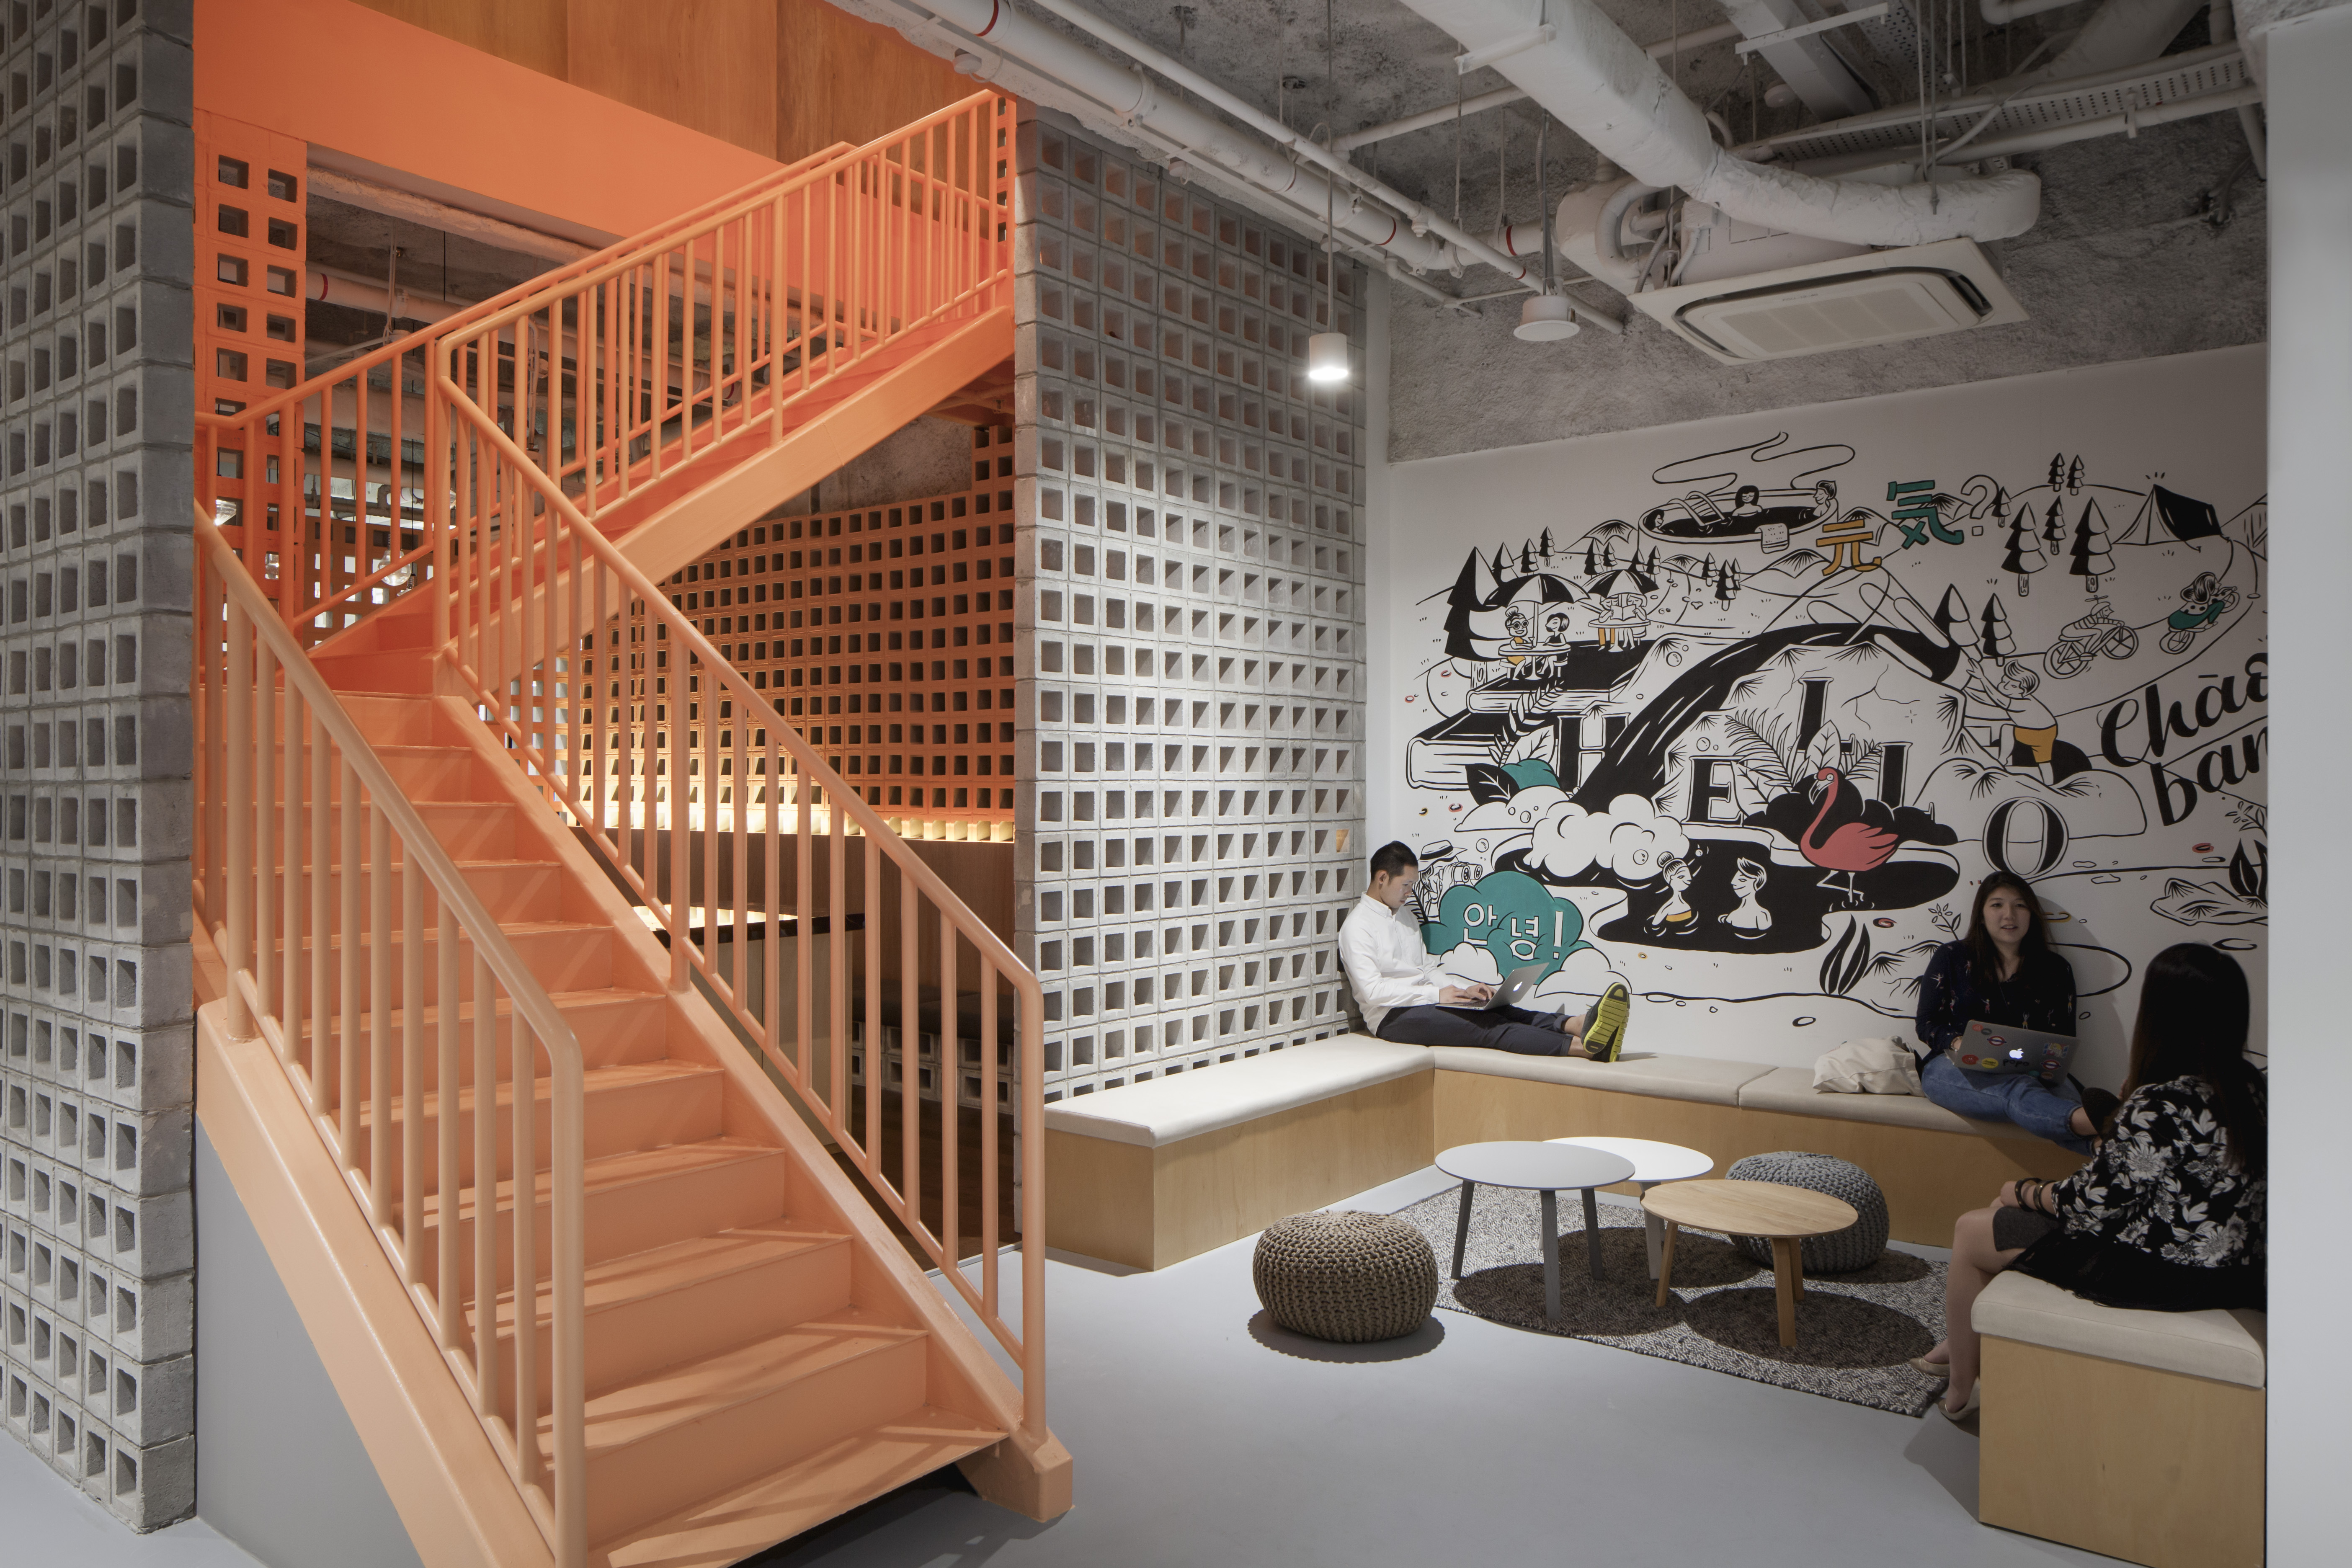 airbnb office singapore. airbnboffice_singapore_bangkok_betonbrut; airbnboffice_singapore_auckland; airbnboffice_singapore_008_betonbrut; airbnboffice_singapore_007_betonbrut airbnb office singapore t